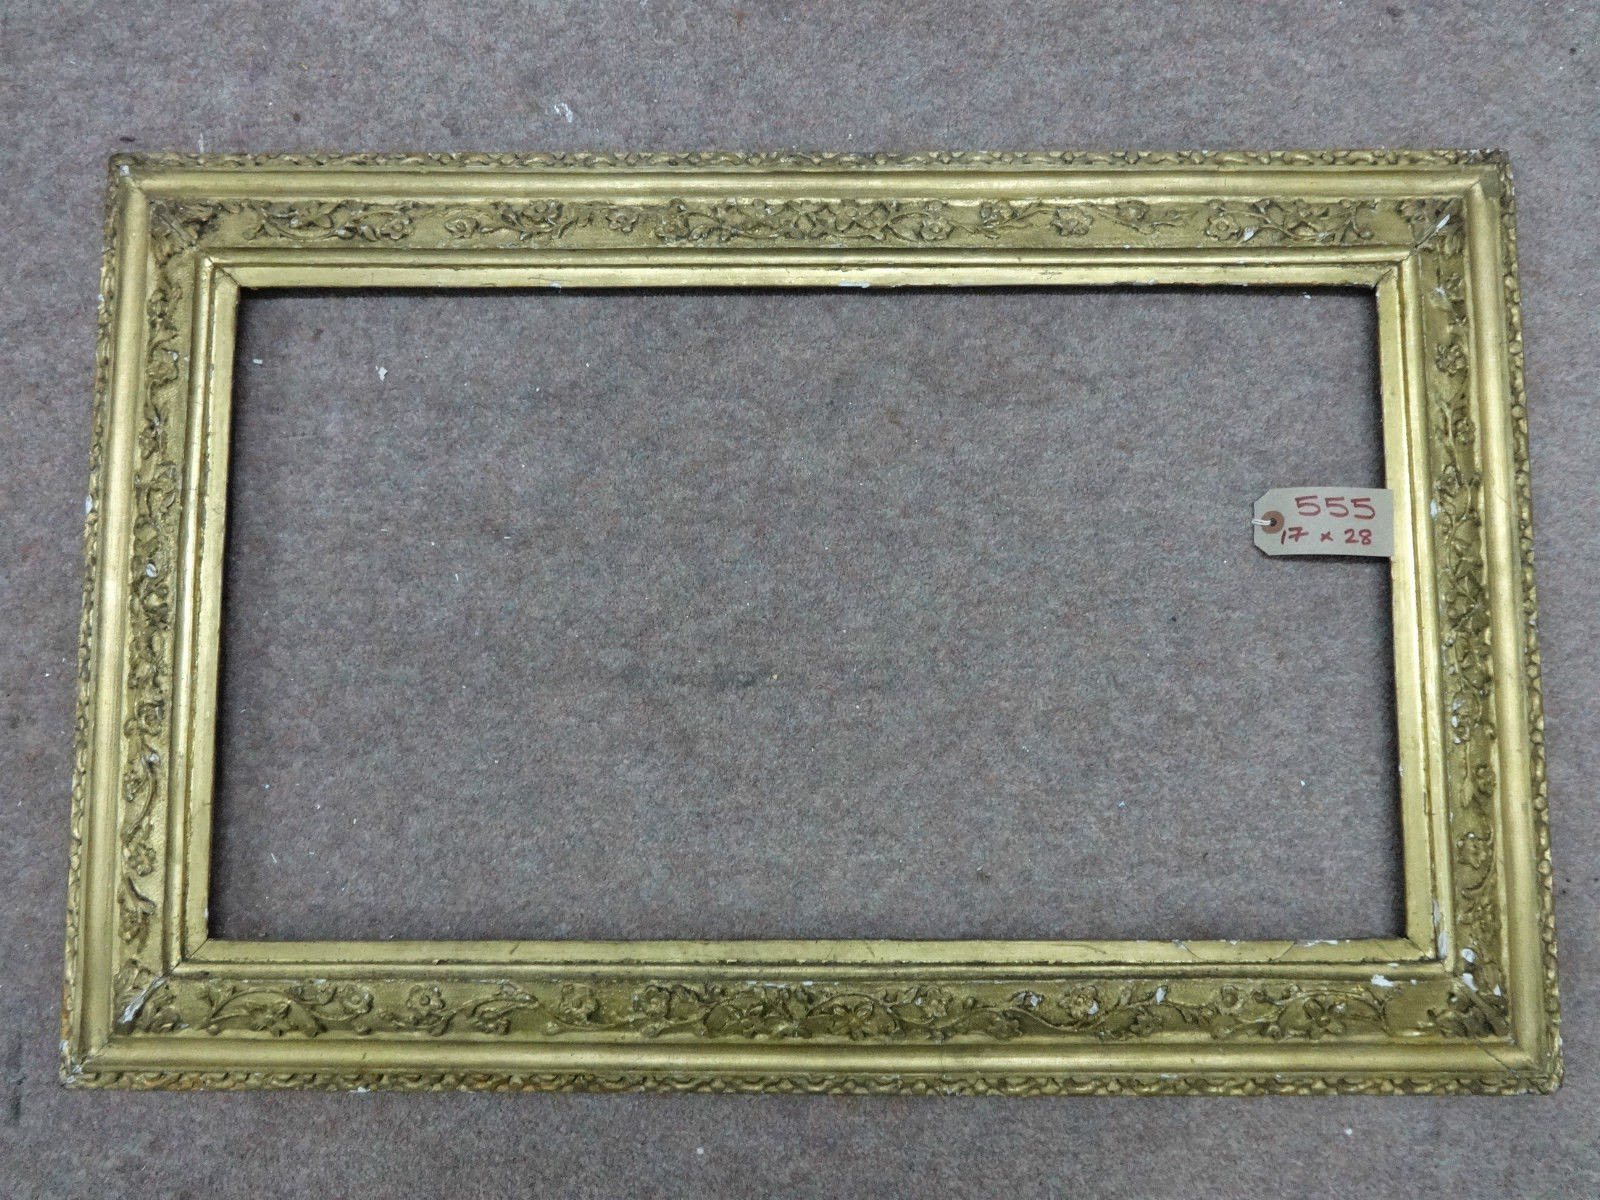 Antique Frame Sale: 17th Century English Carved Frame